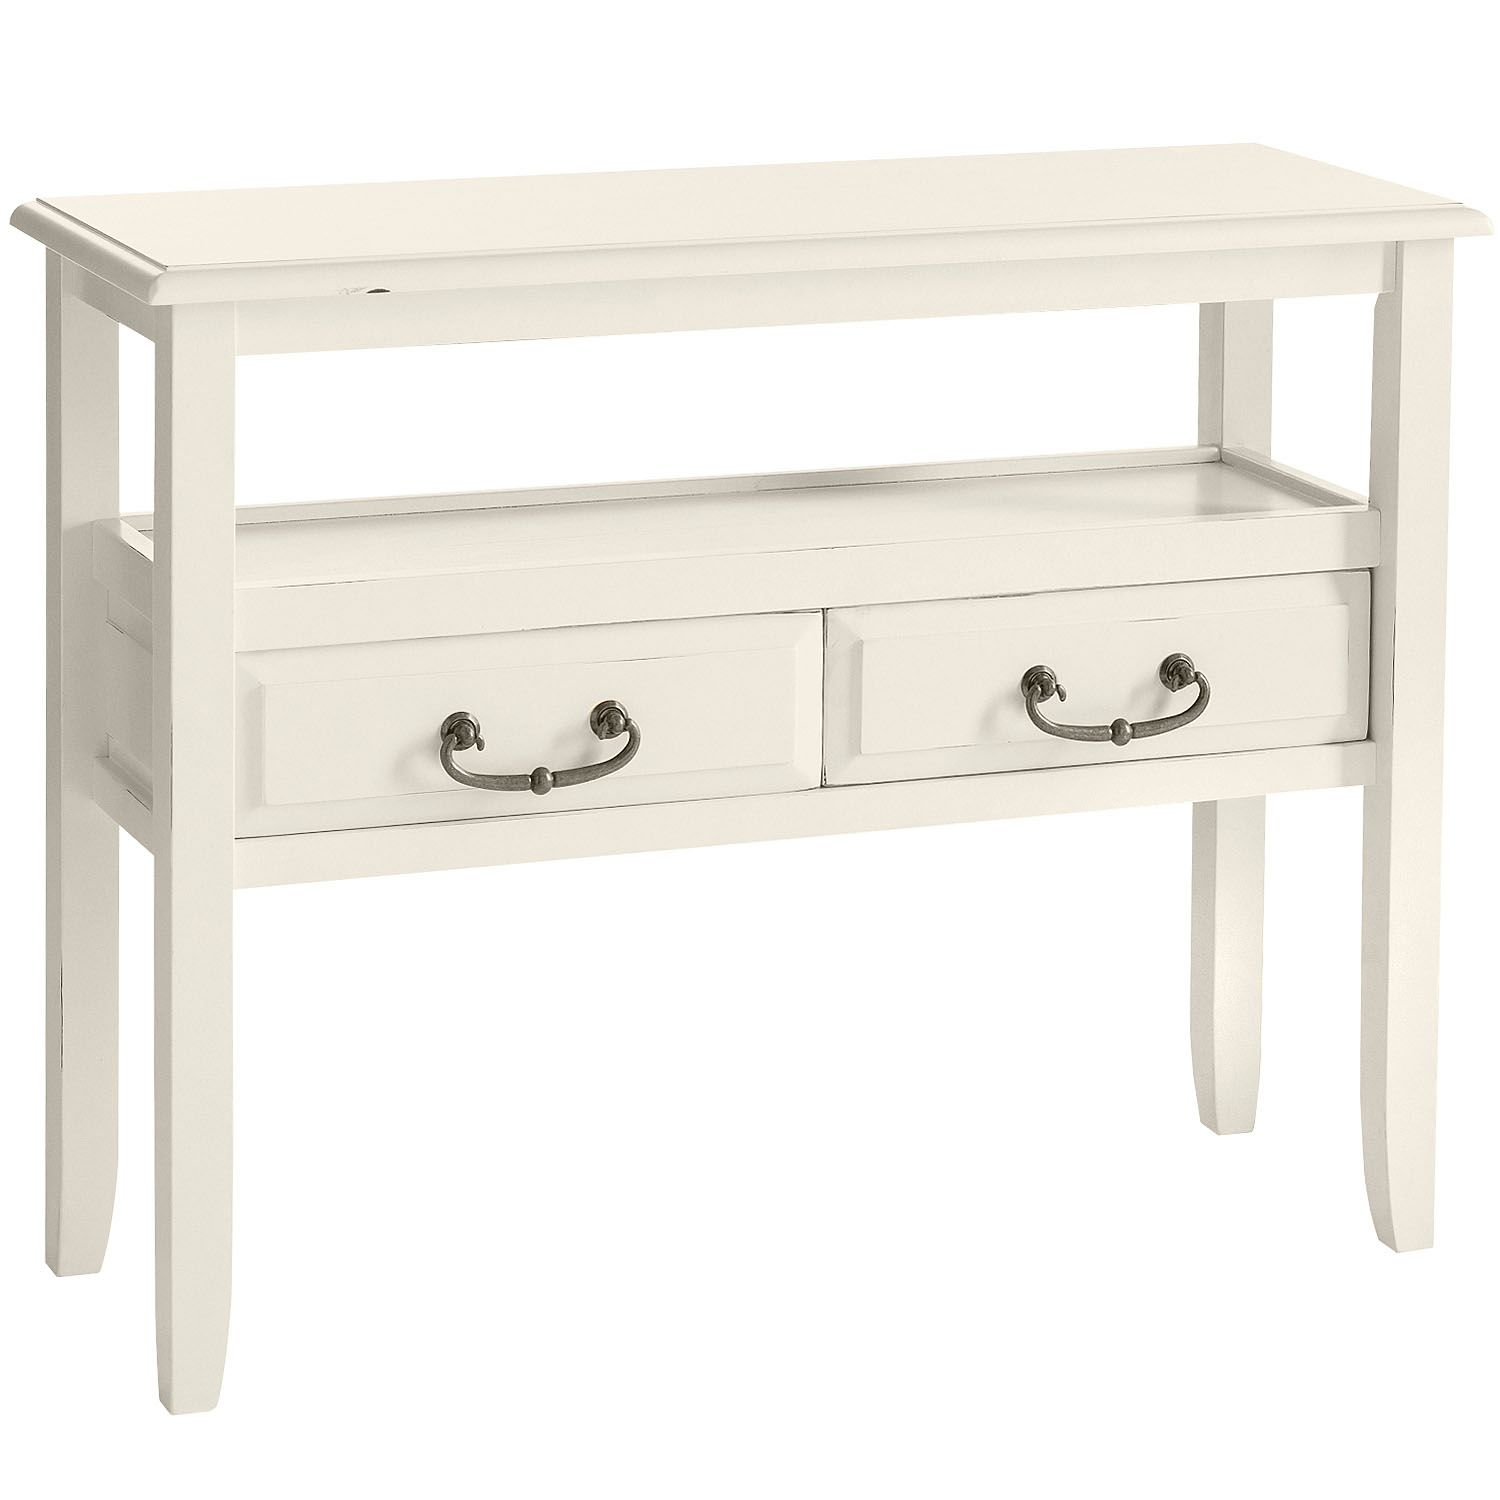 anywhere antique white console table with pull handles pier imports one accent floor standing lamps solid wood corner lawn chair umbrella lucite coffee ikea bella green mosaic